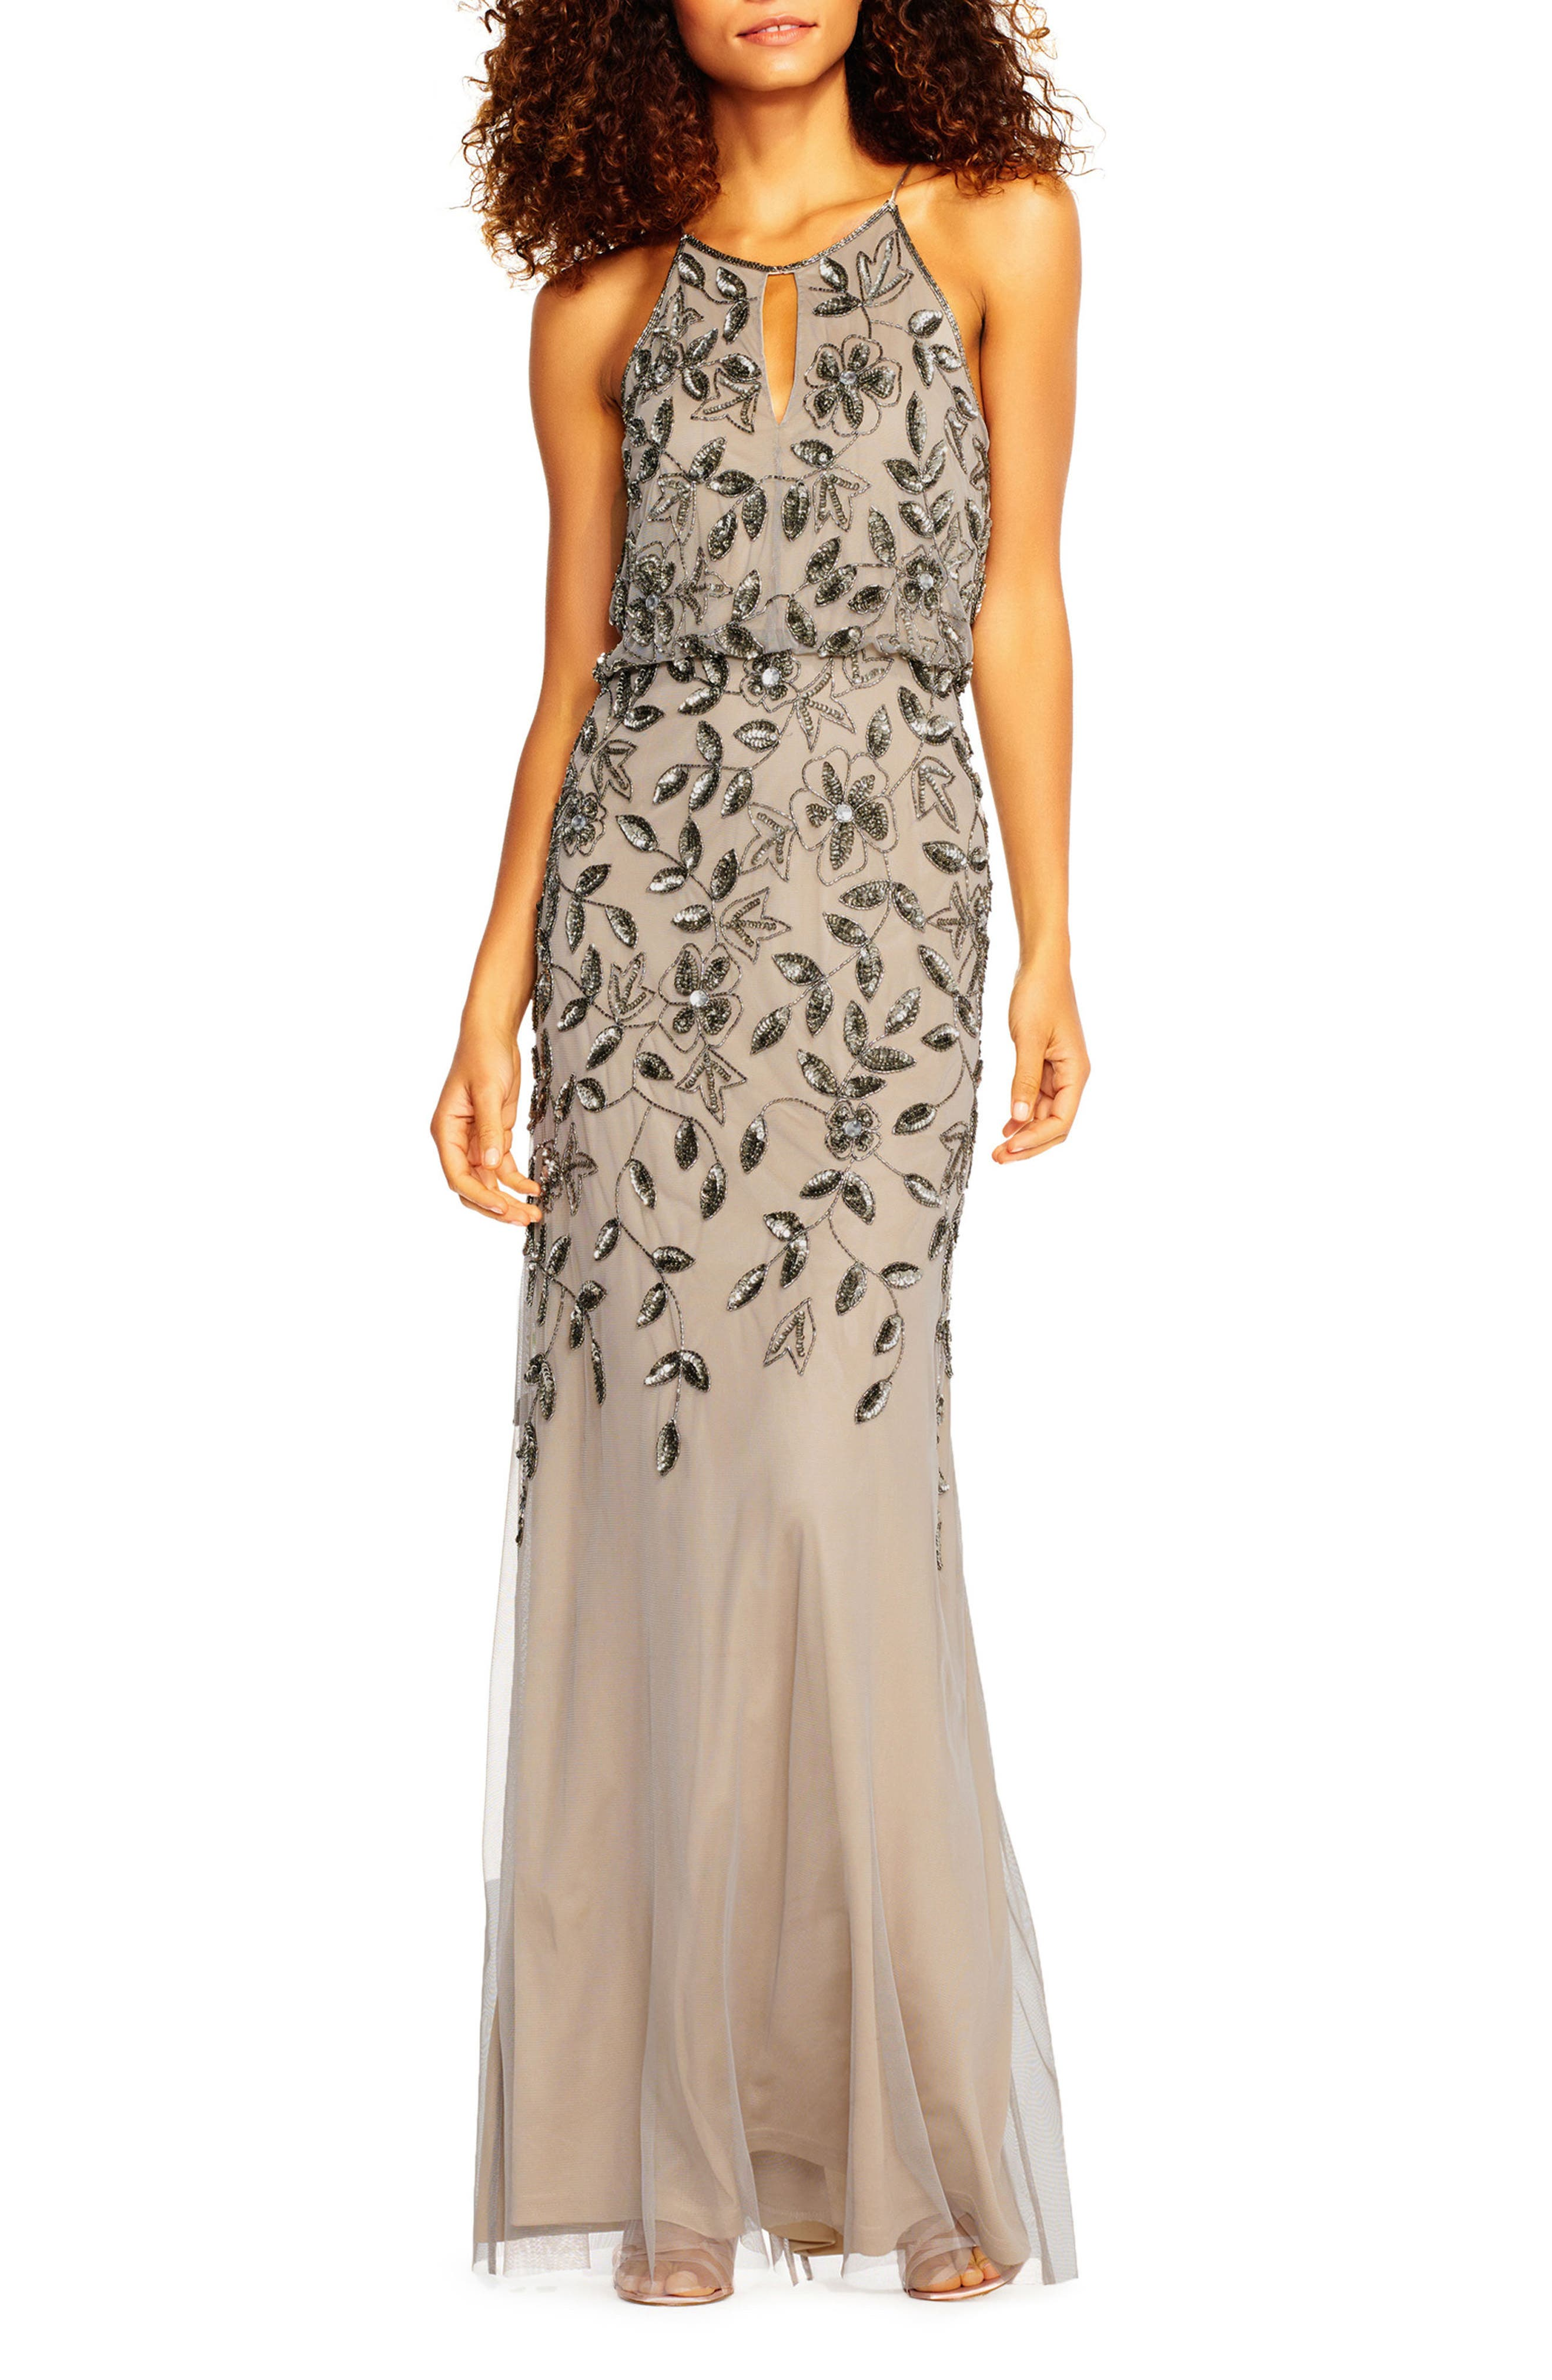 Main Image - Adrianna Papell Beaded Halter Neck Mermaid Gown